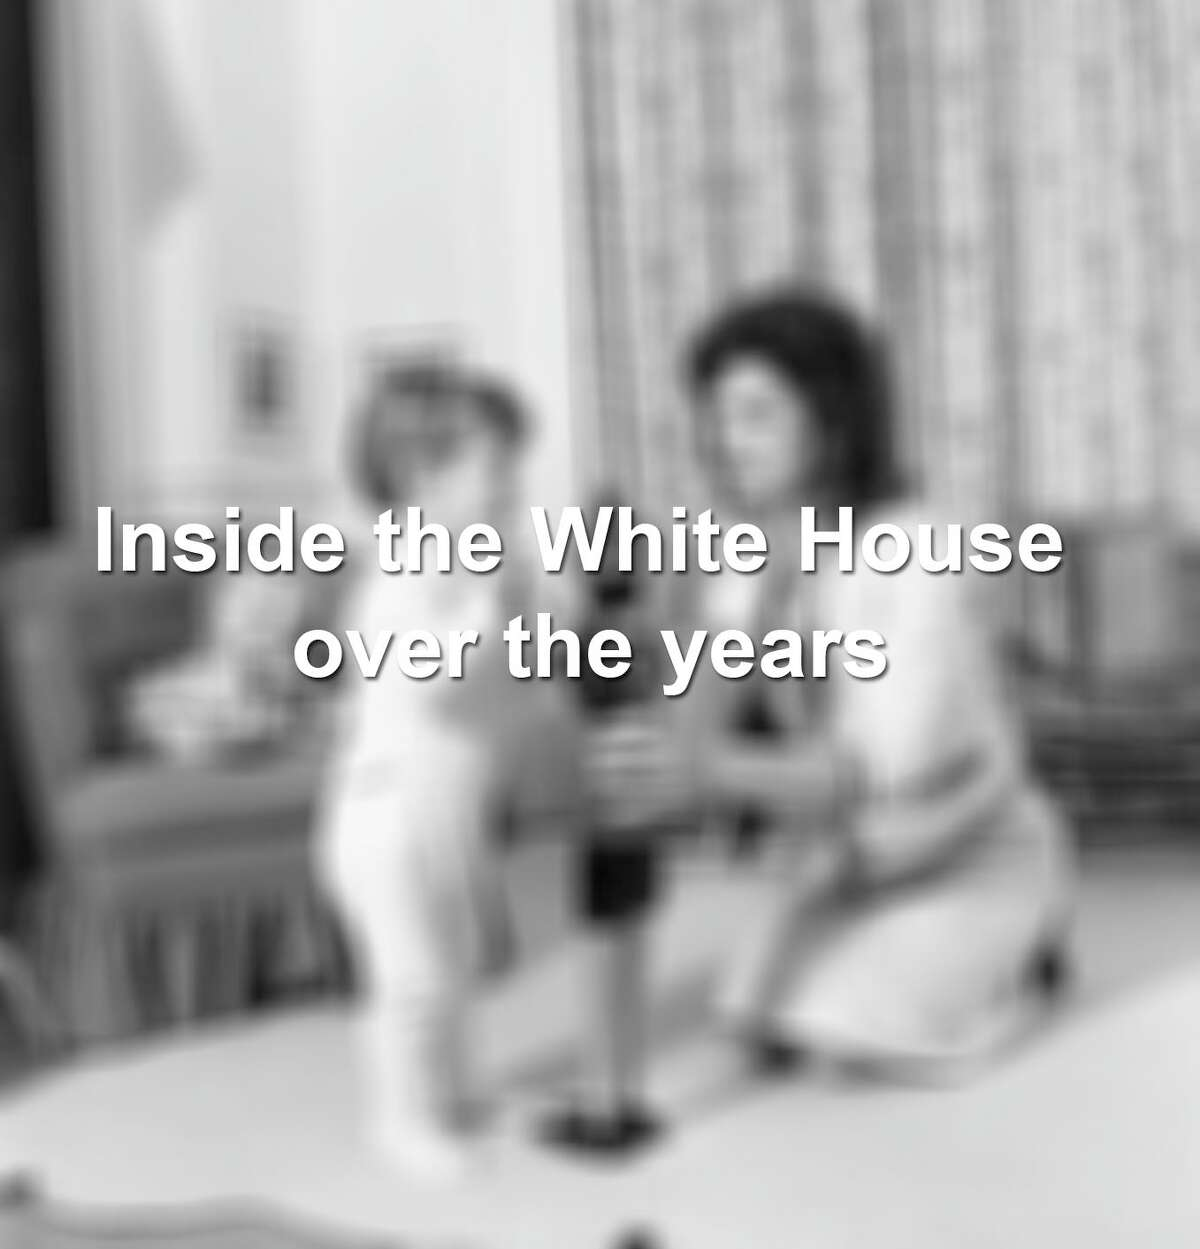 Keep scrolling to see what the White House has looked like over the years.